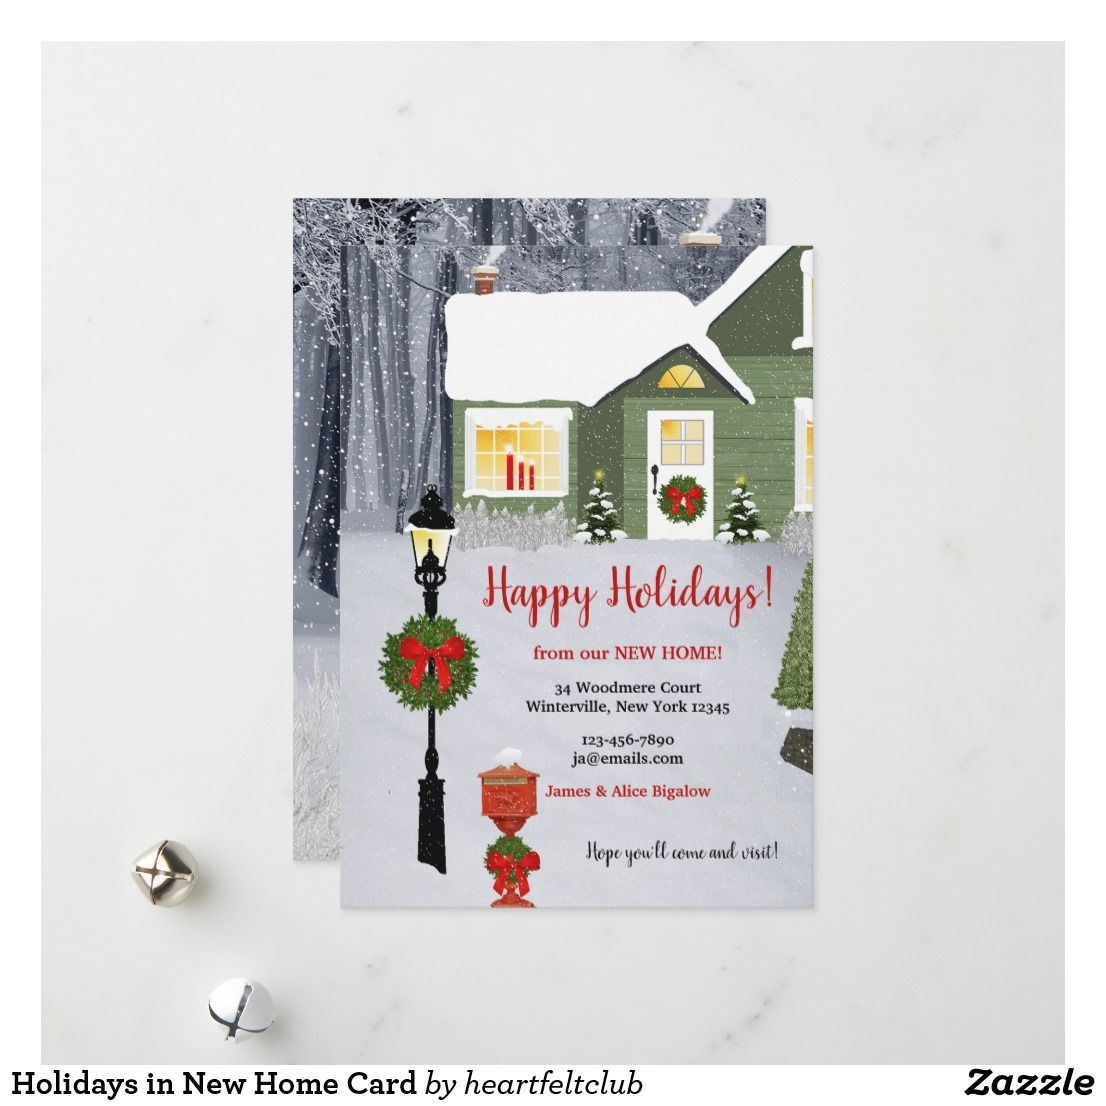 Holidays In New Home Card Zazzle Com Holiday Design Card Christmas Holiday Cards Holiday Greetings